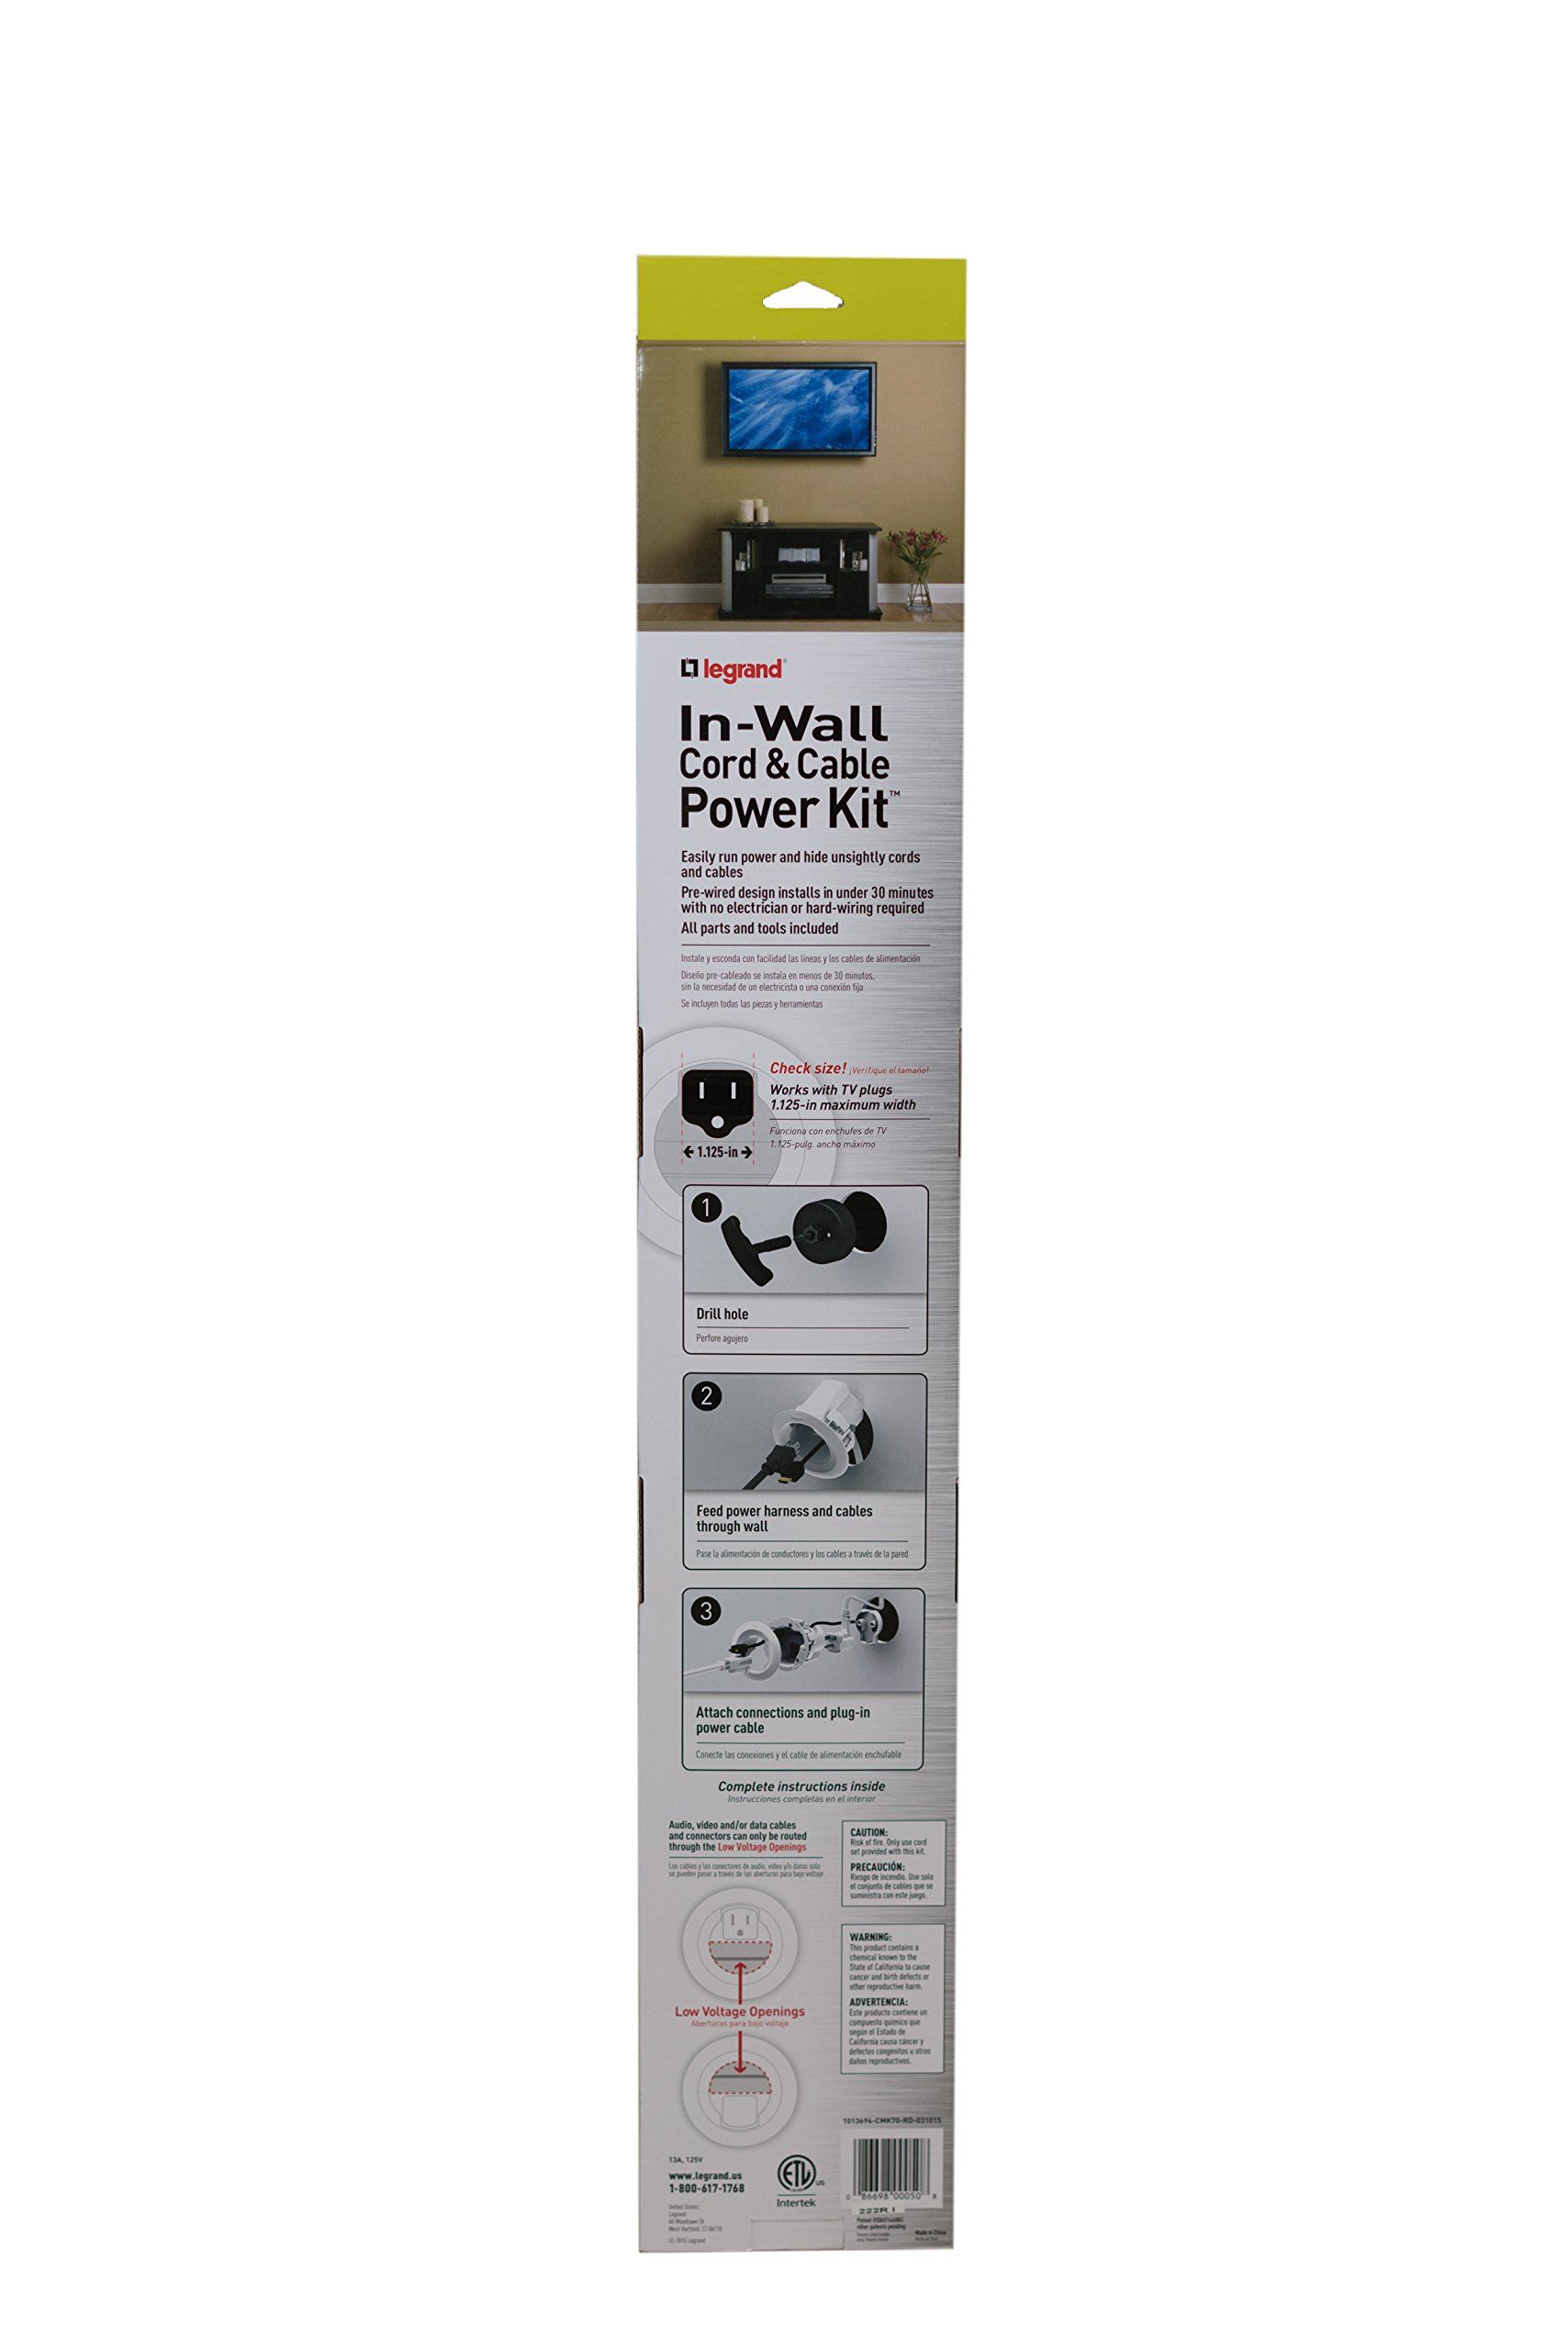 Legrand - Wiremold CMK70 Flat Screen TV Cord and Cable Power Kit, Recessed In-Wall Cable Management System with PowerConnect, White. by Wiremold (Image #4)